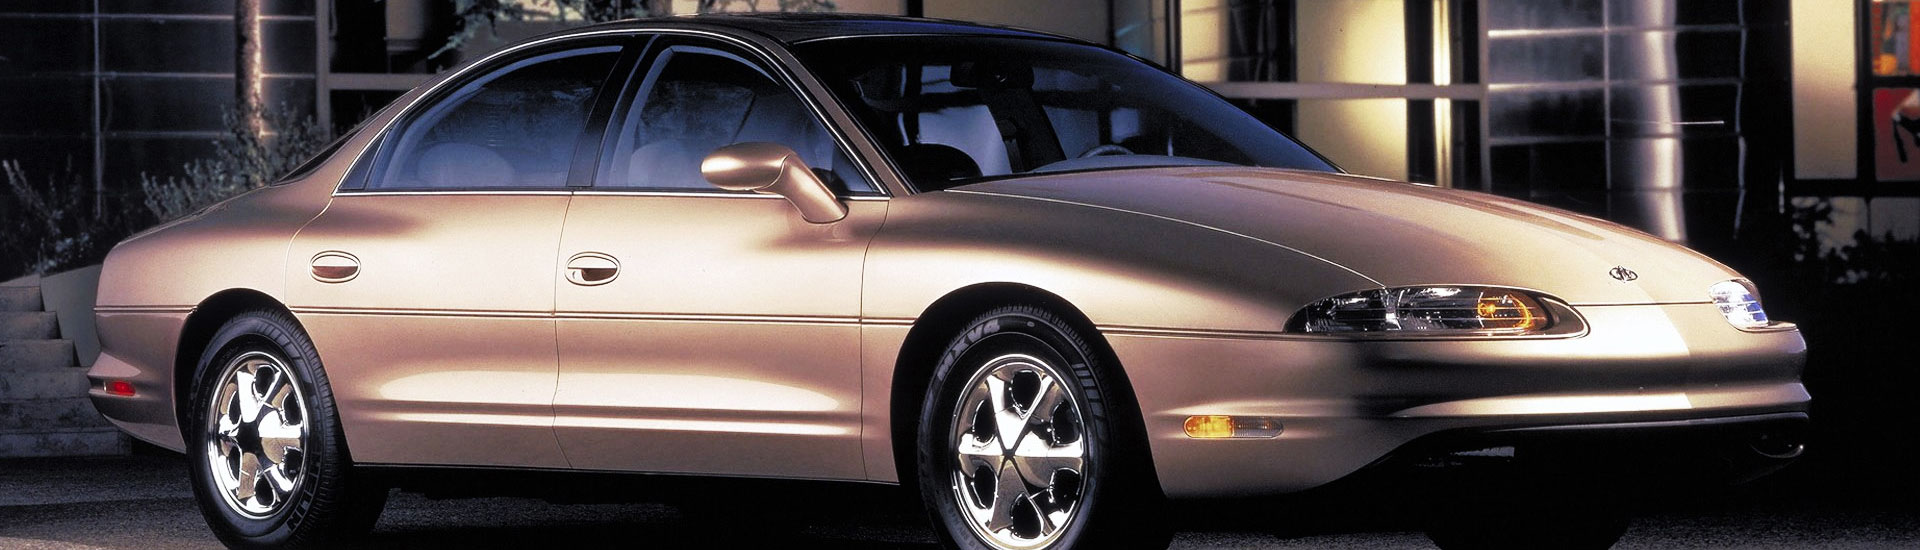 Oldsmobile Aftermarket Auto Accessories & Tints